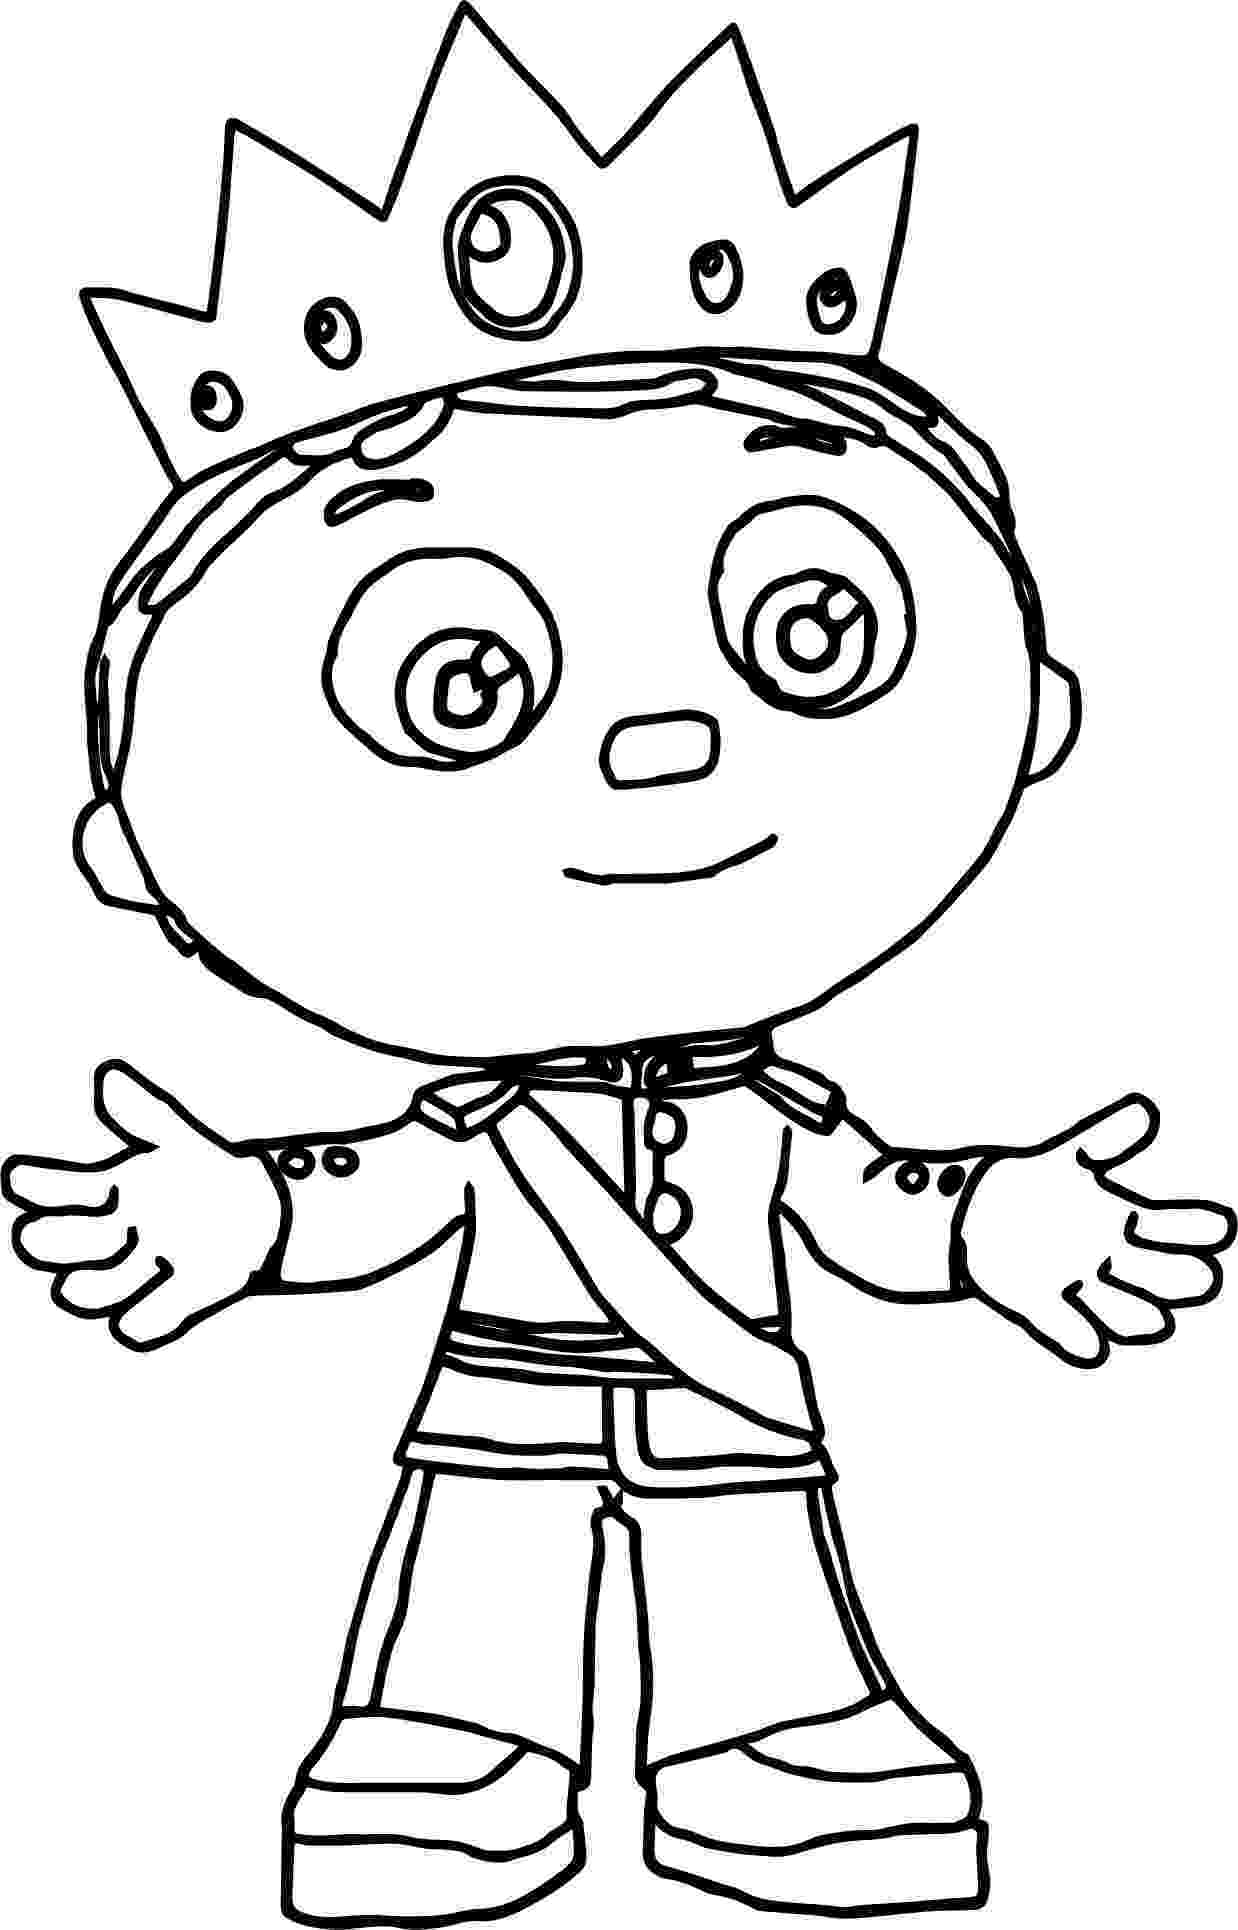 super colouring pages super why coloring pages best coloring pages for kids super colouring pages 1 1